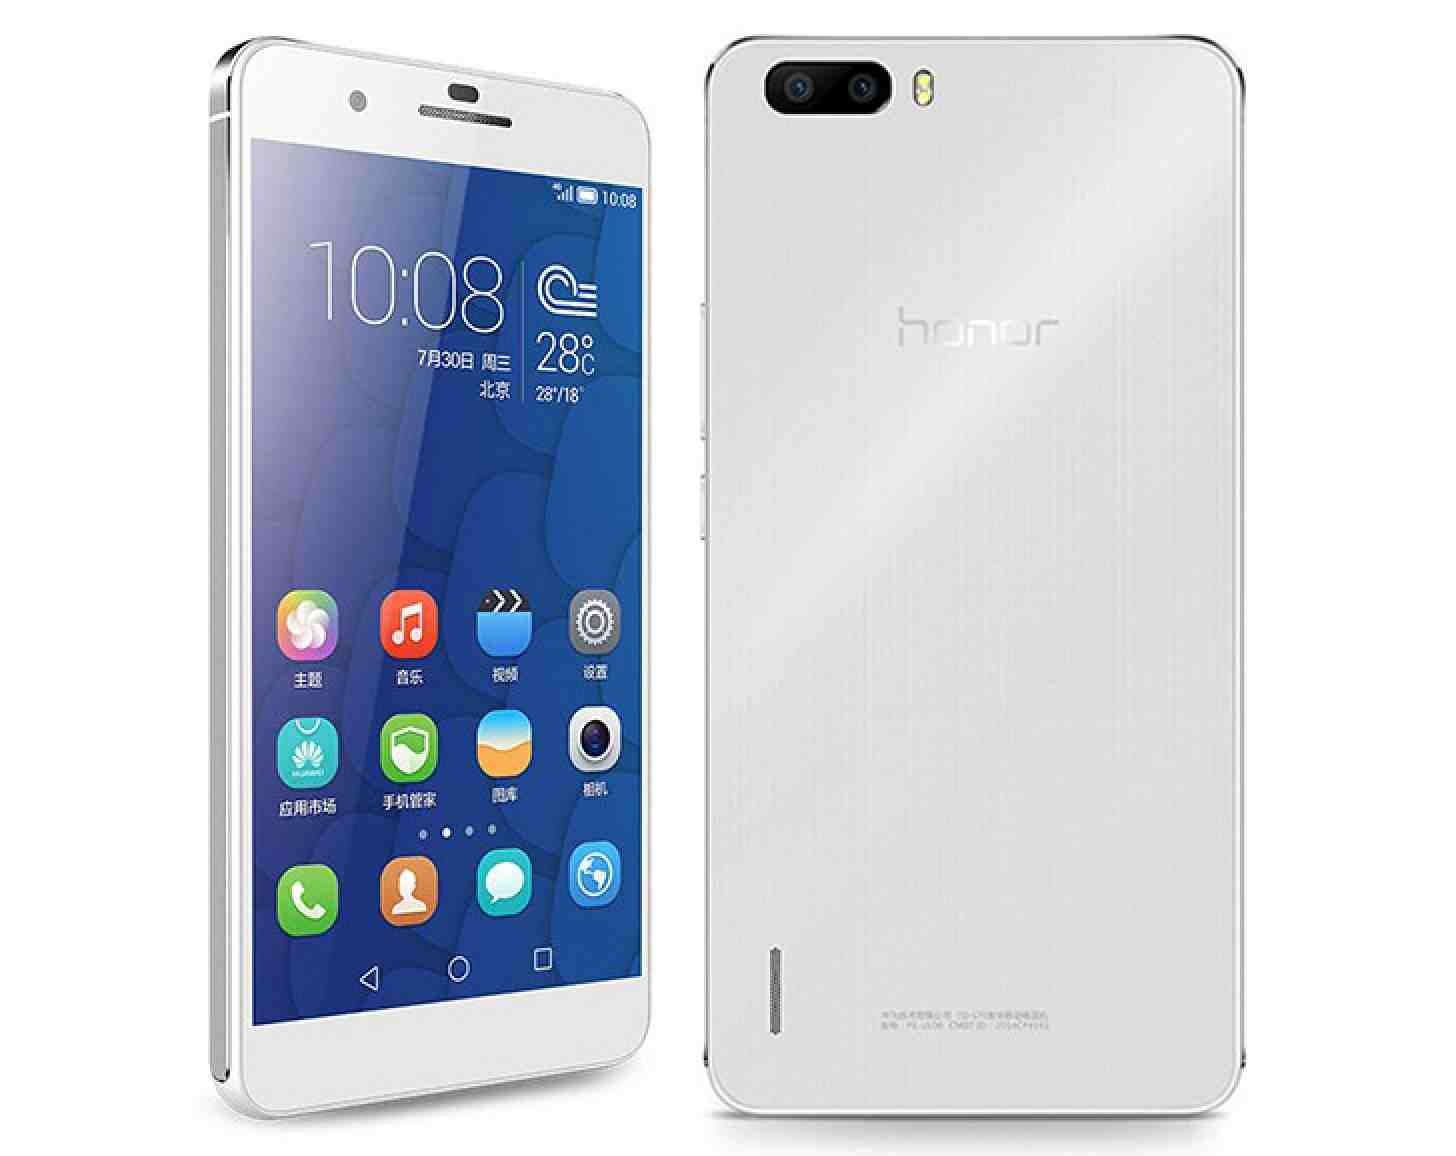 Huawei Honor 6 Plus Image